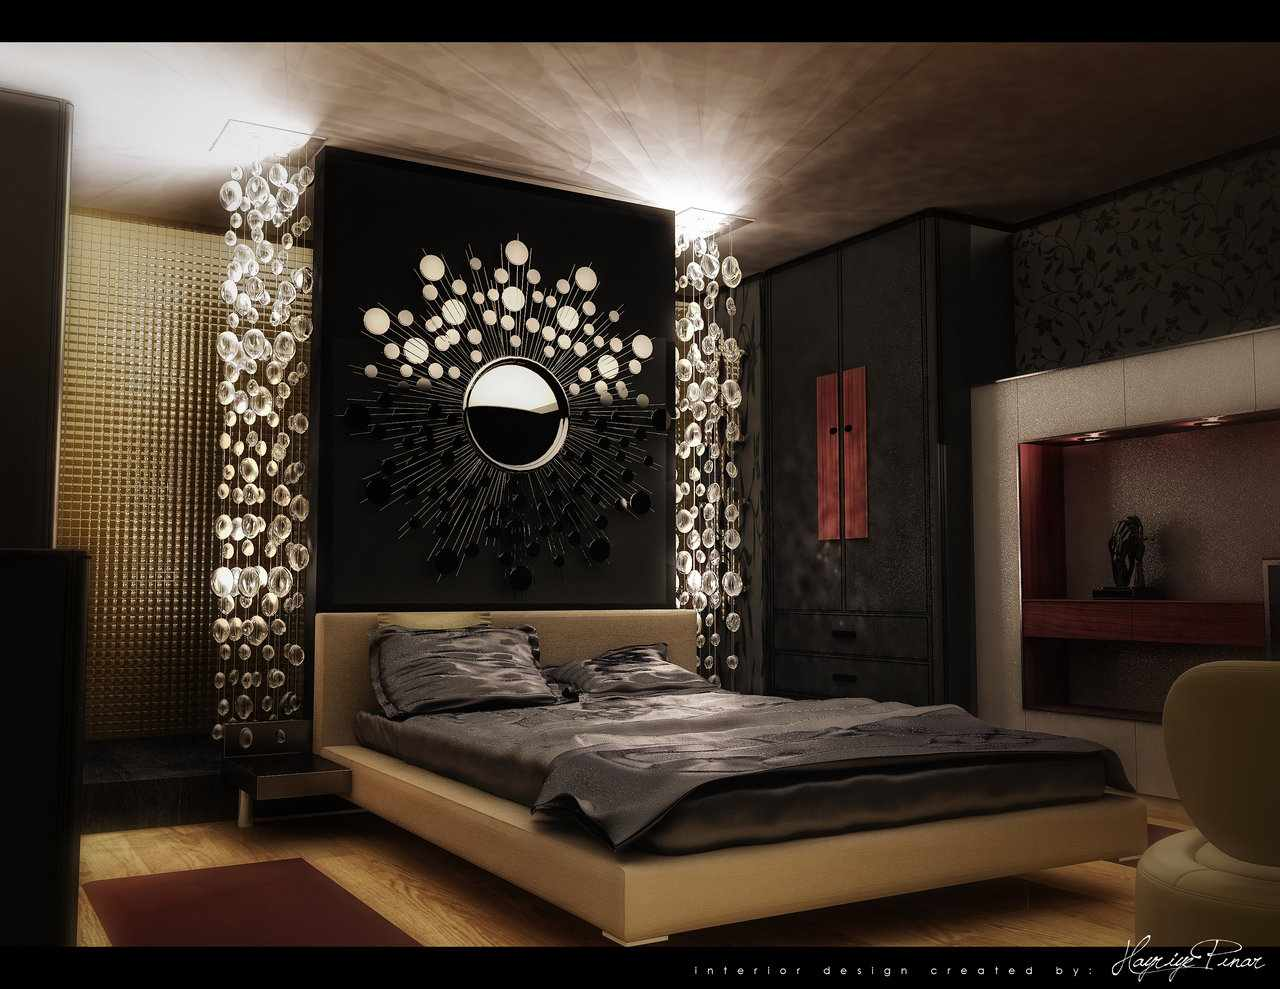 ikea bedroom ideas ikea bedroom 2014 ideas exotic house interior designs. Black Bedroom Furniture Sets. Home Design Ideas